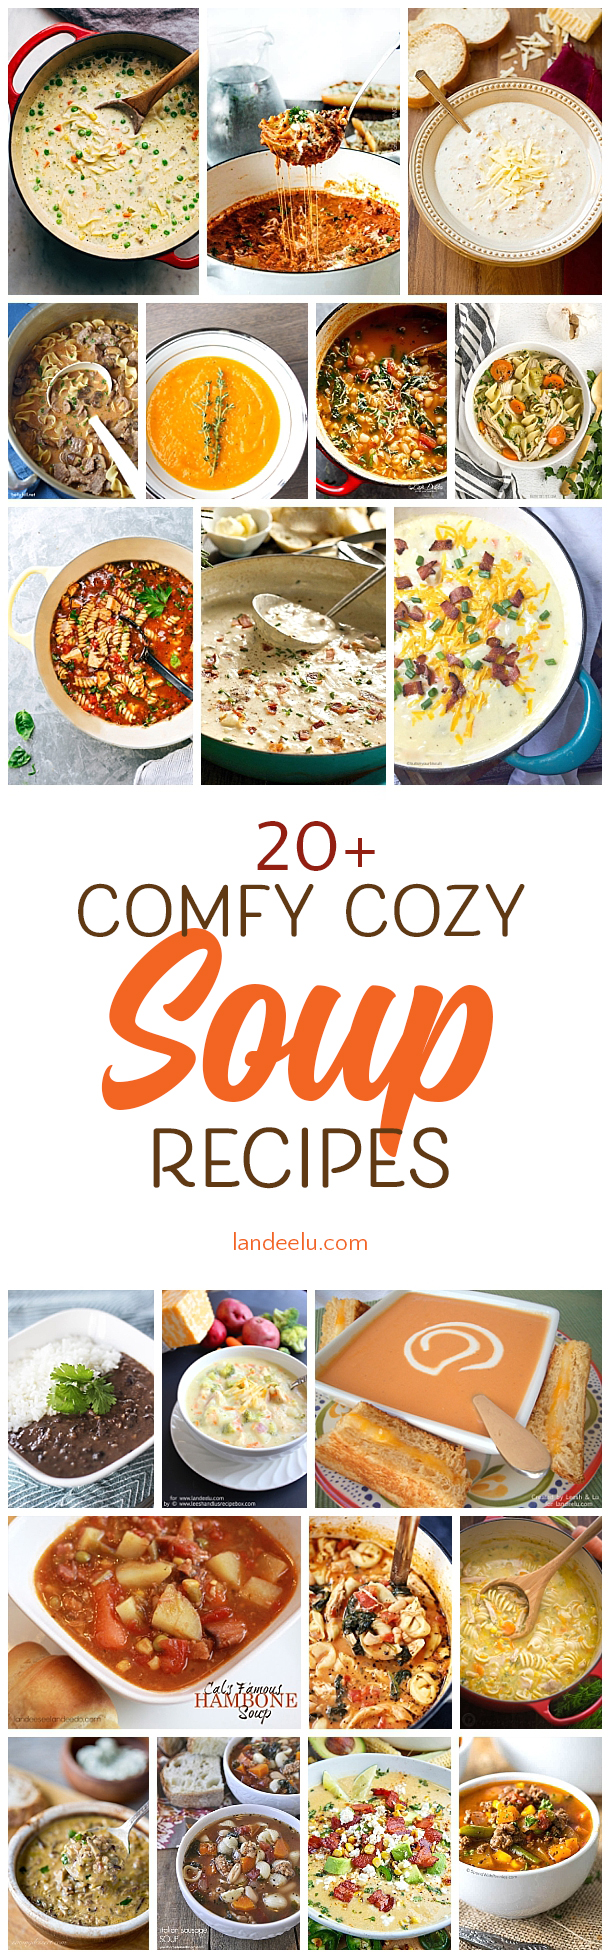 Comfy, cozy best soup recipes for fall